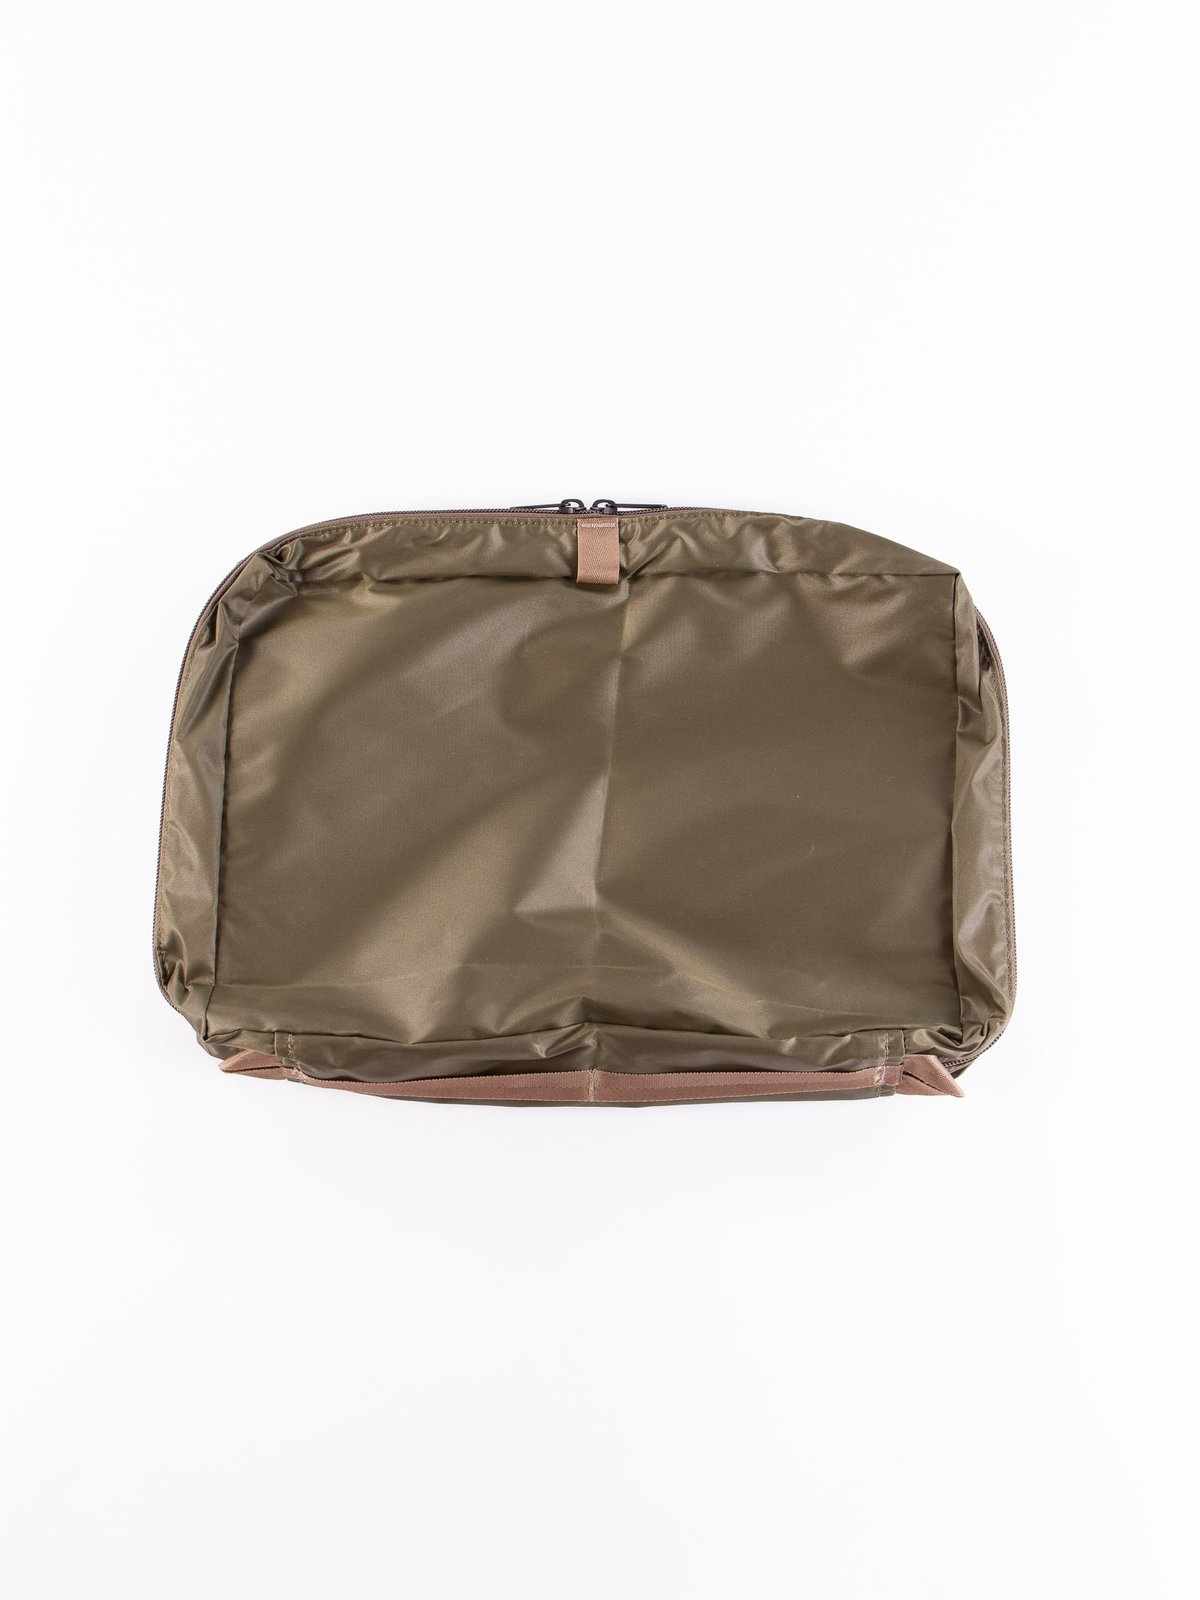 Olive Drab Snack Pack 09805 Pouch Medium - Image 3